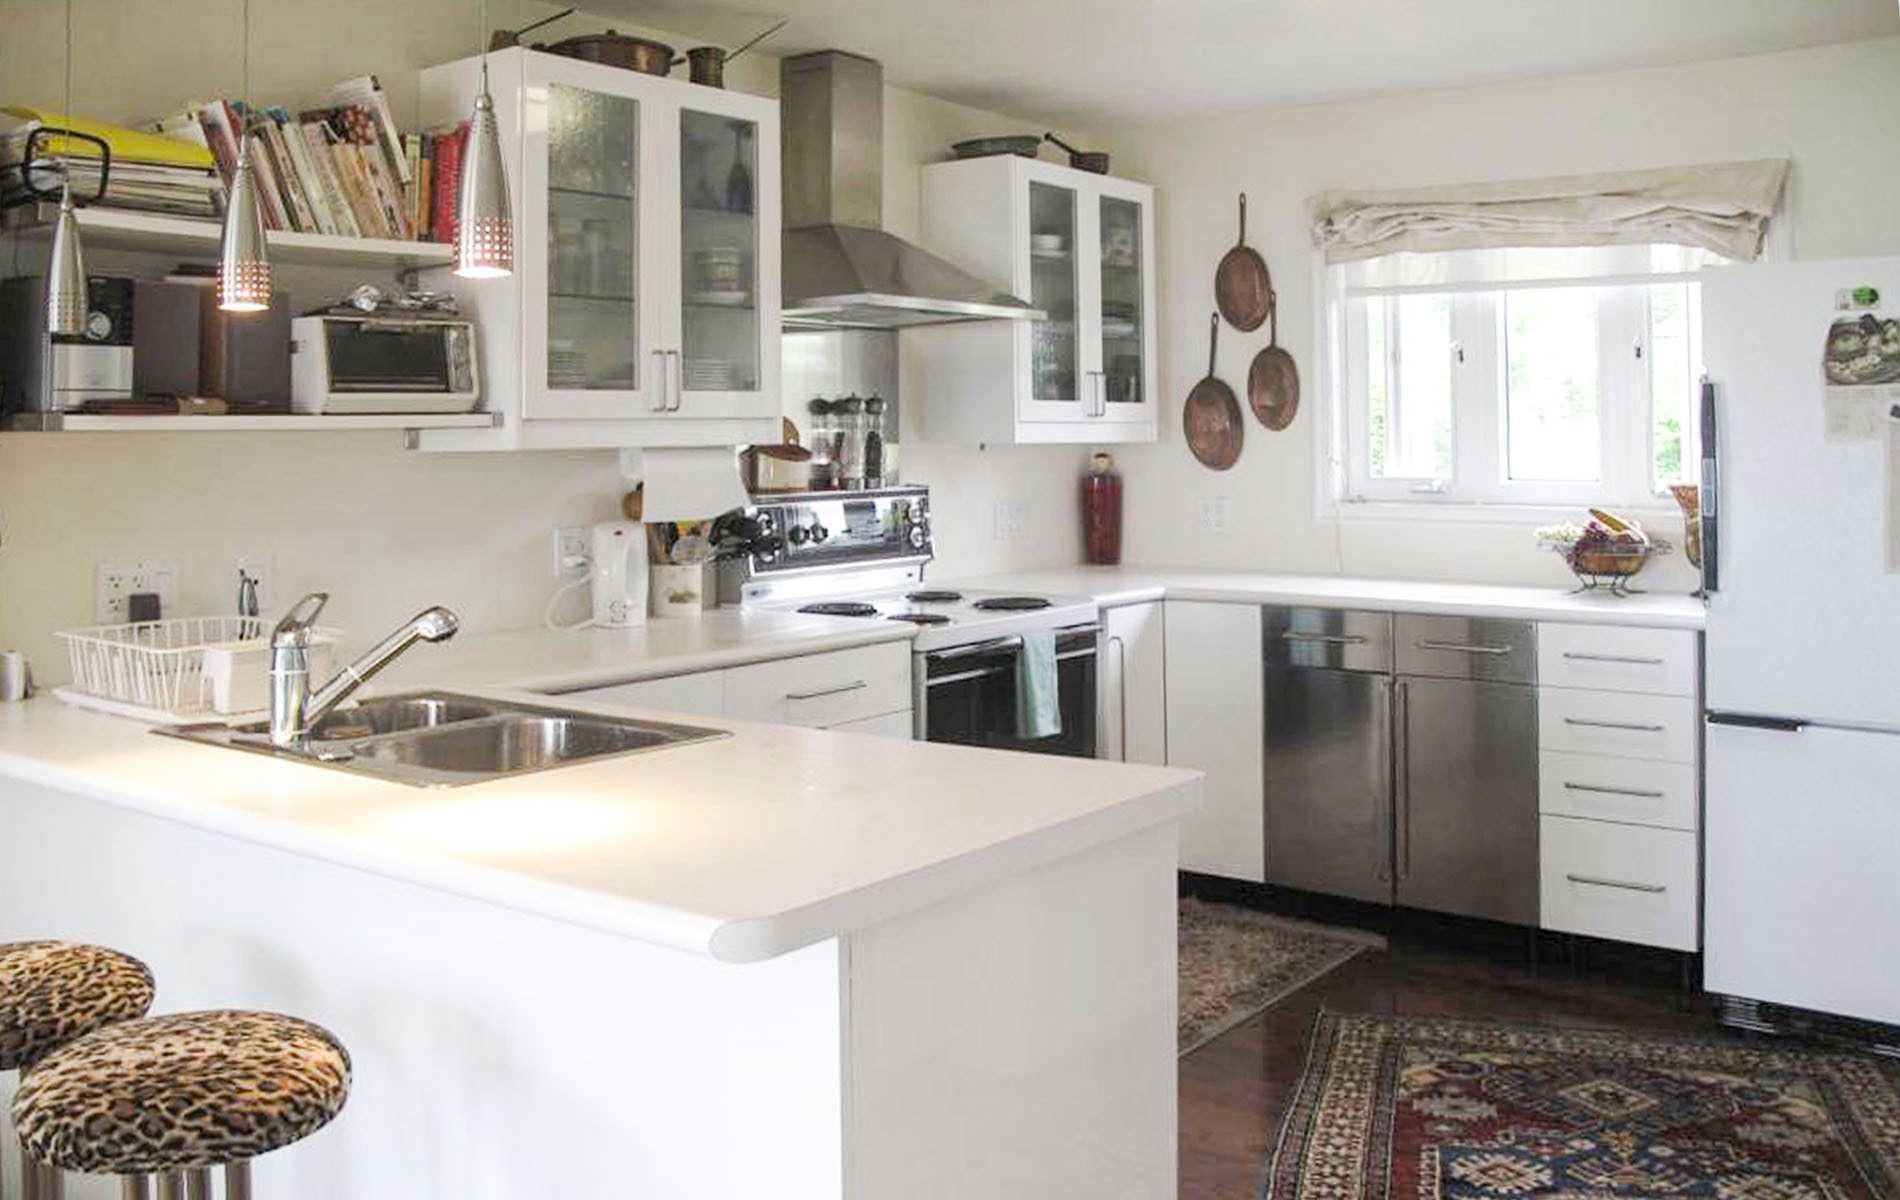 Photo 17: Photos: 62 Cottage Avenue in Blue Mountains: Thornbury House (Bungalow) for lease : MLS®# X4754668